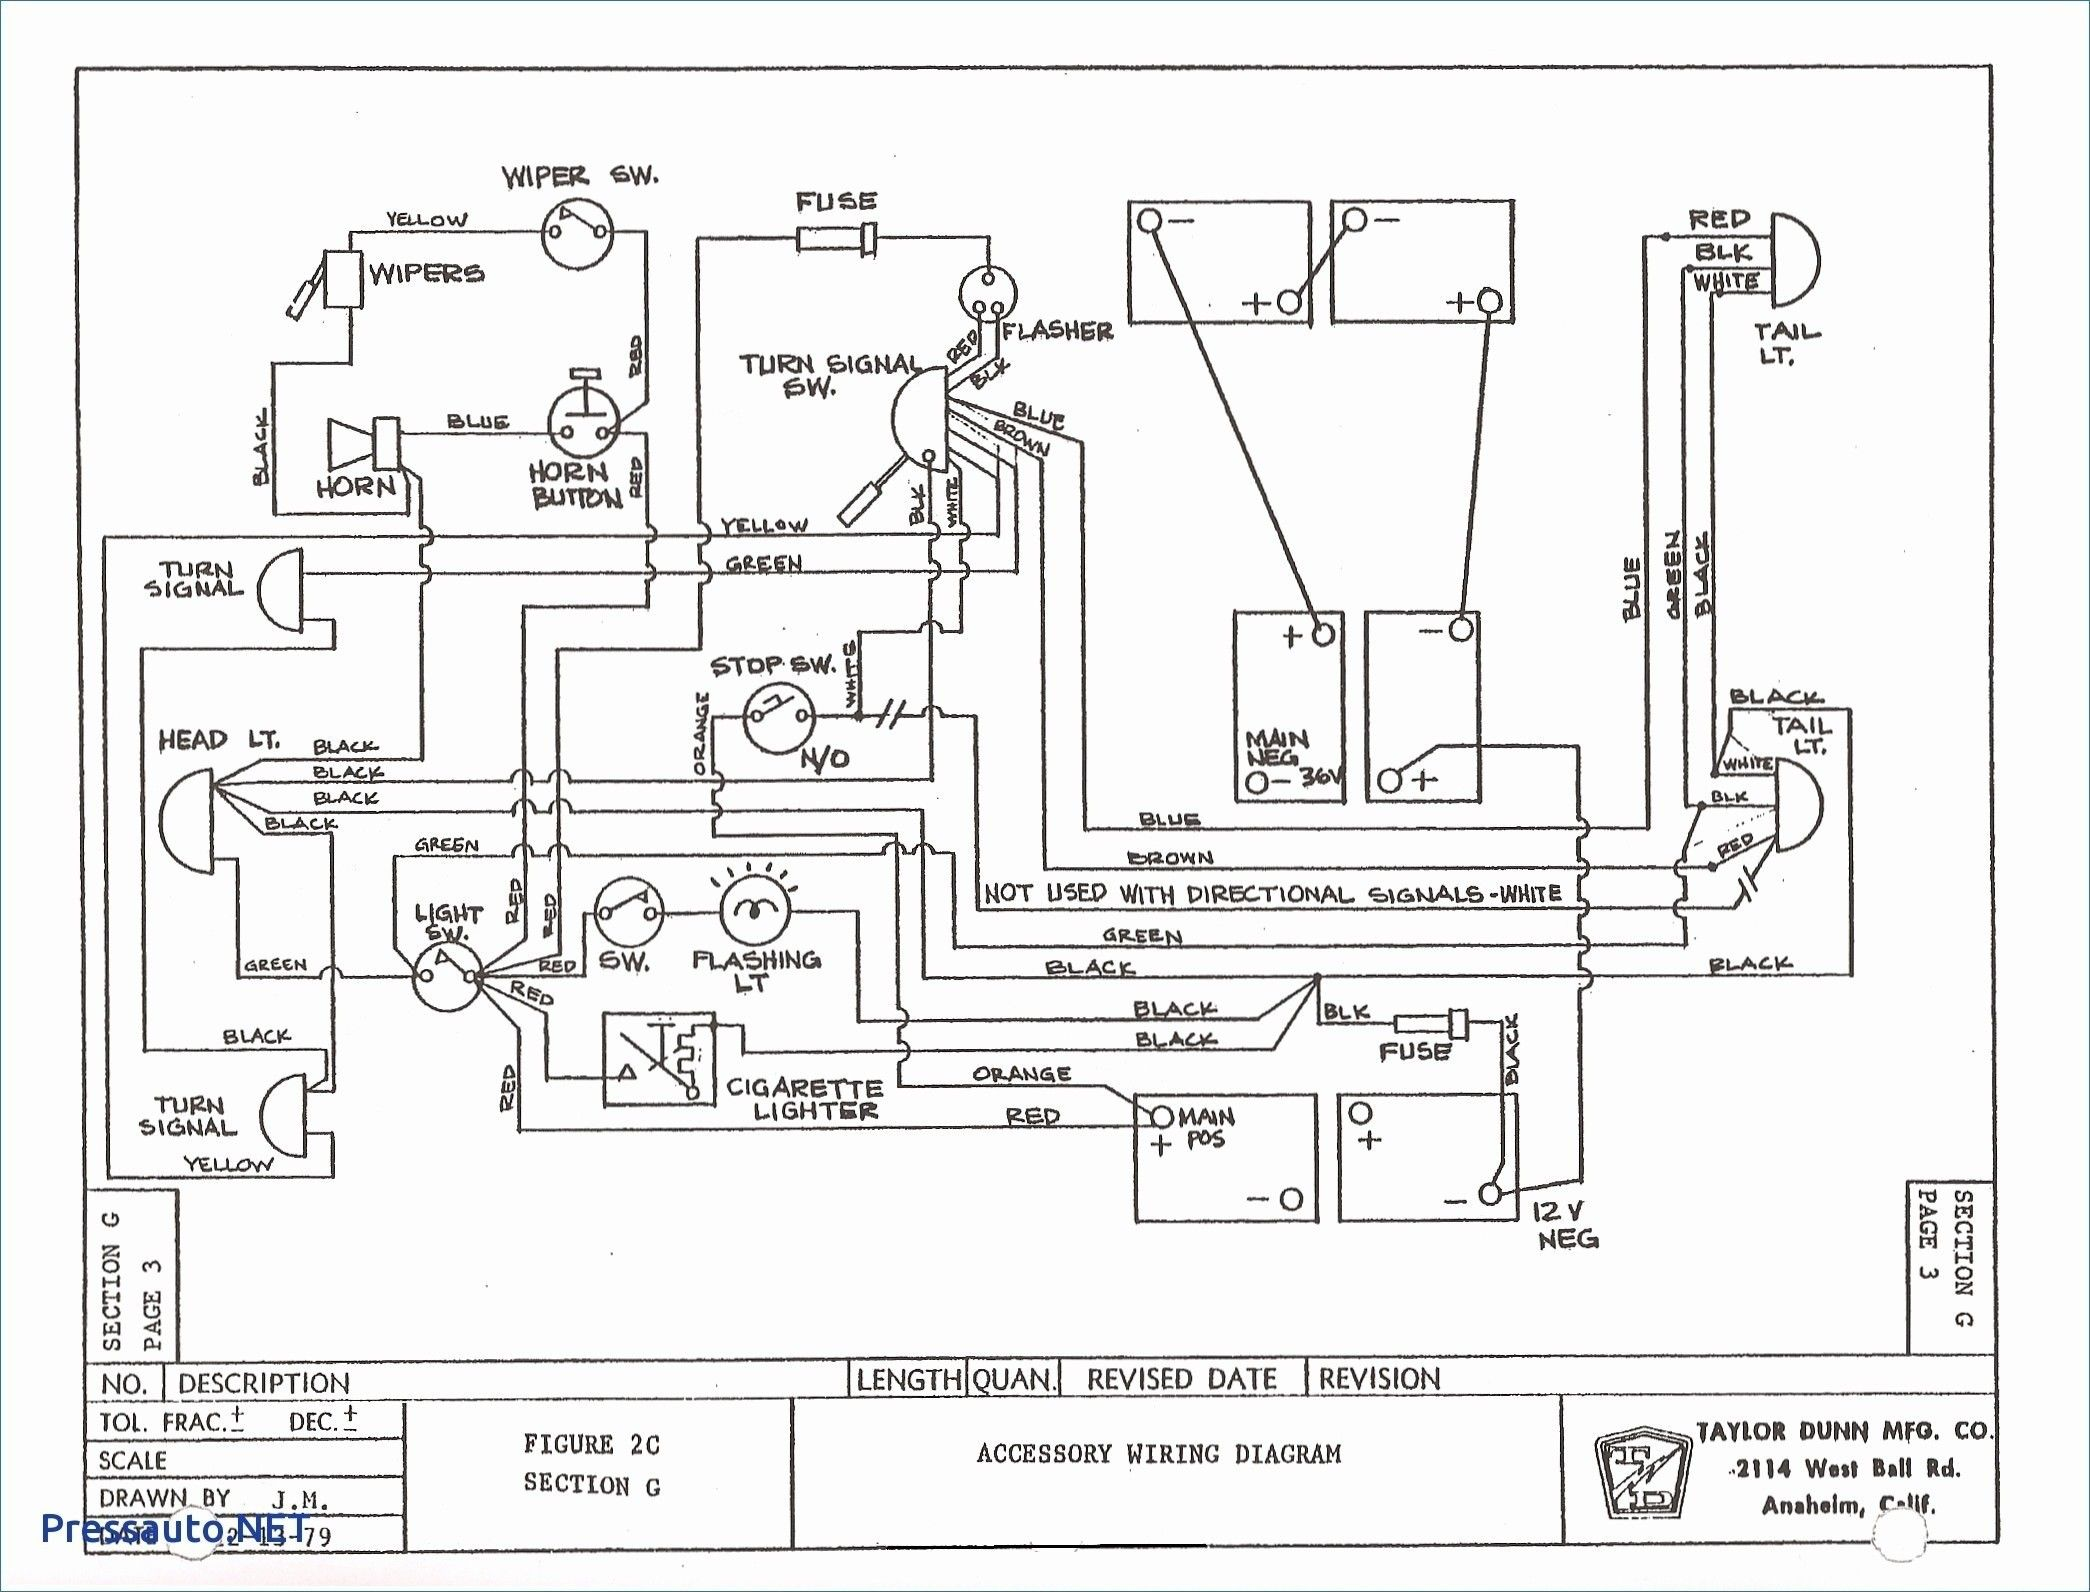 1999 yamaha g16 gas wiring diagram unique ezgo txt series wiring diagram diagram diagramsample  ezgo txt series wiring diagram diagram